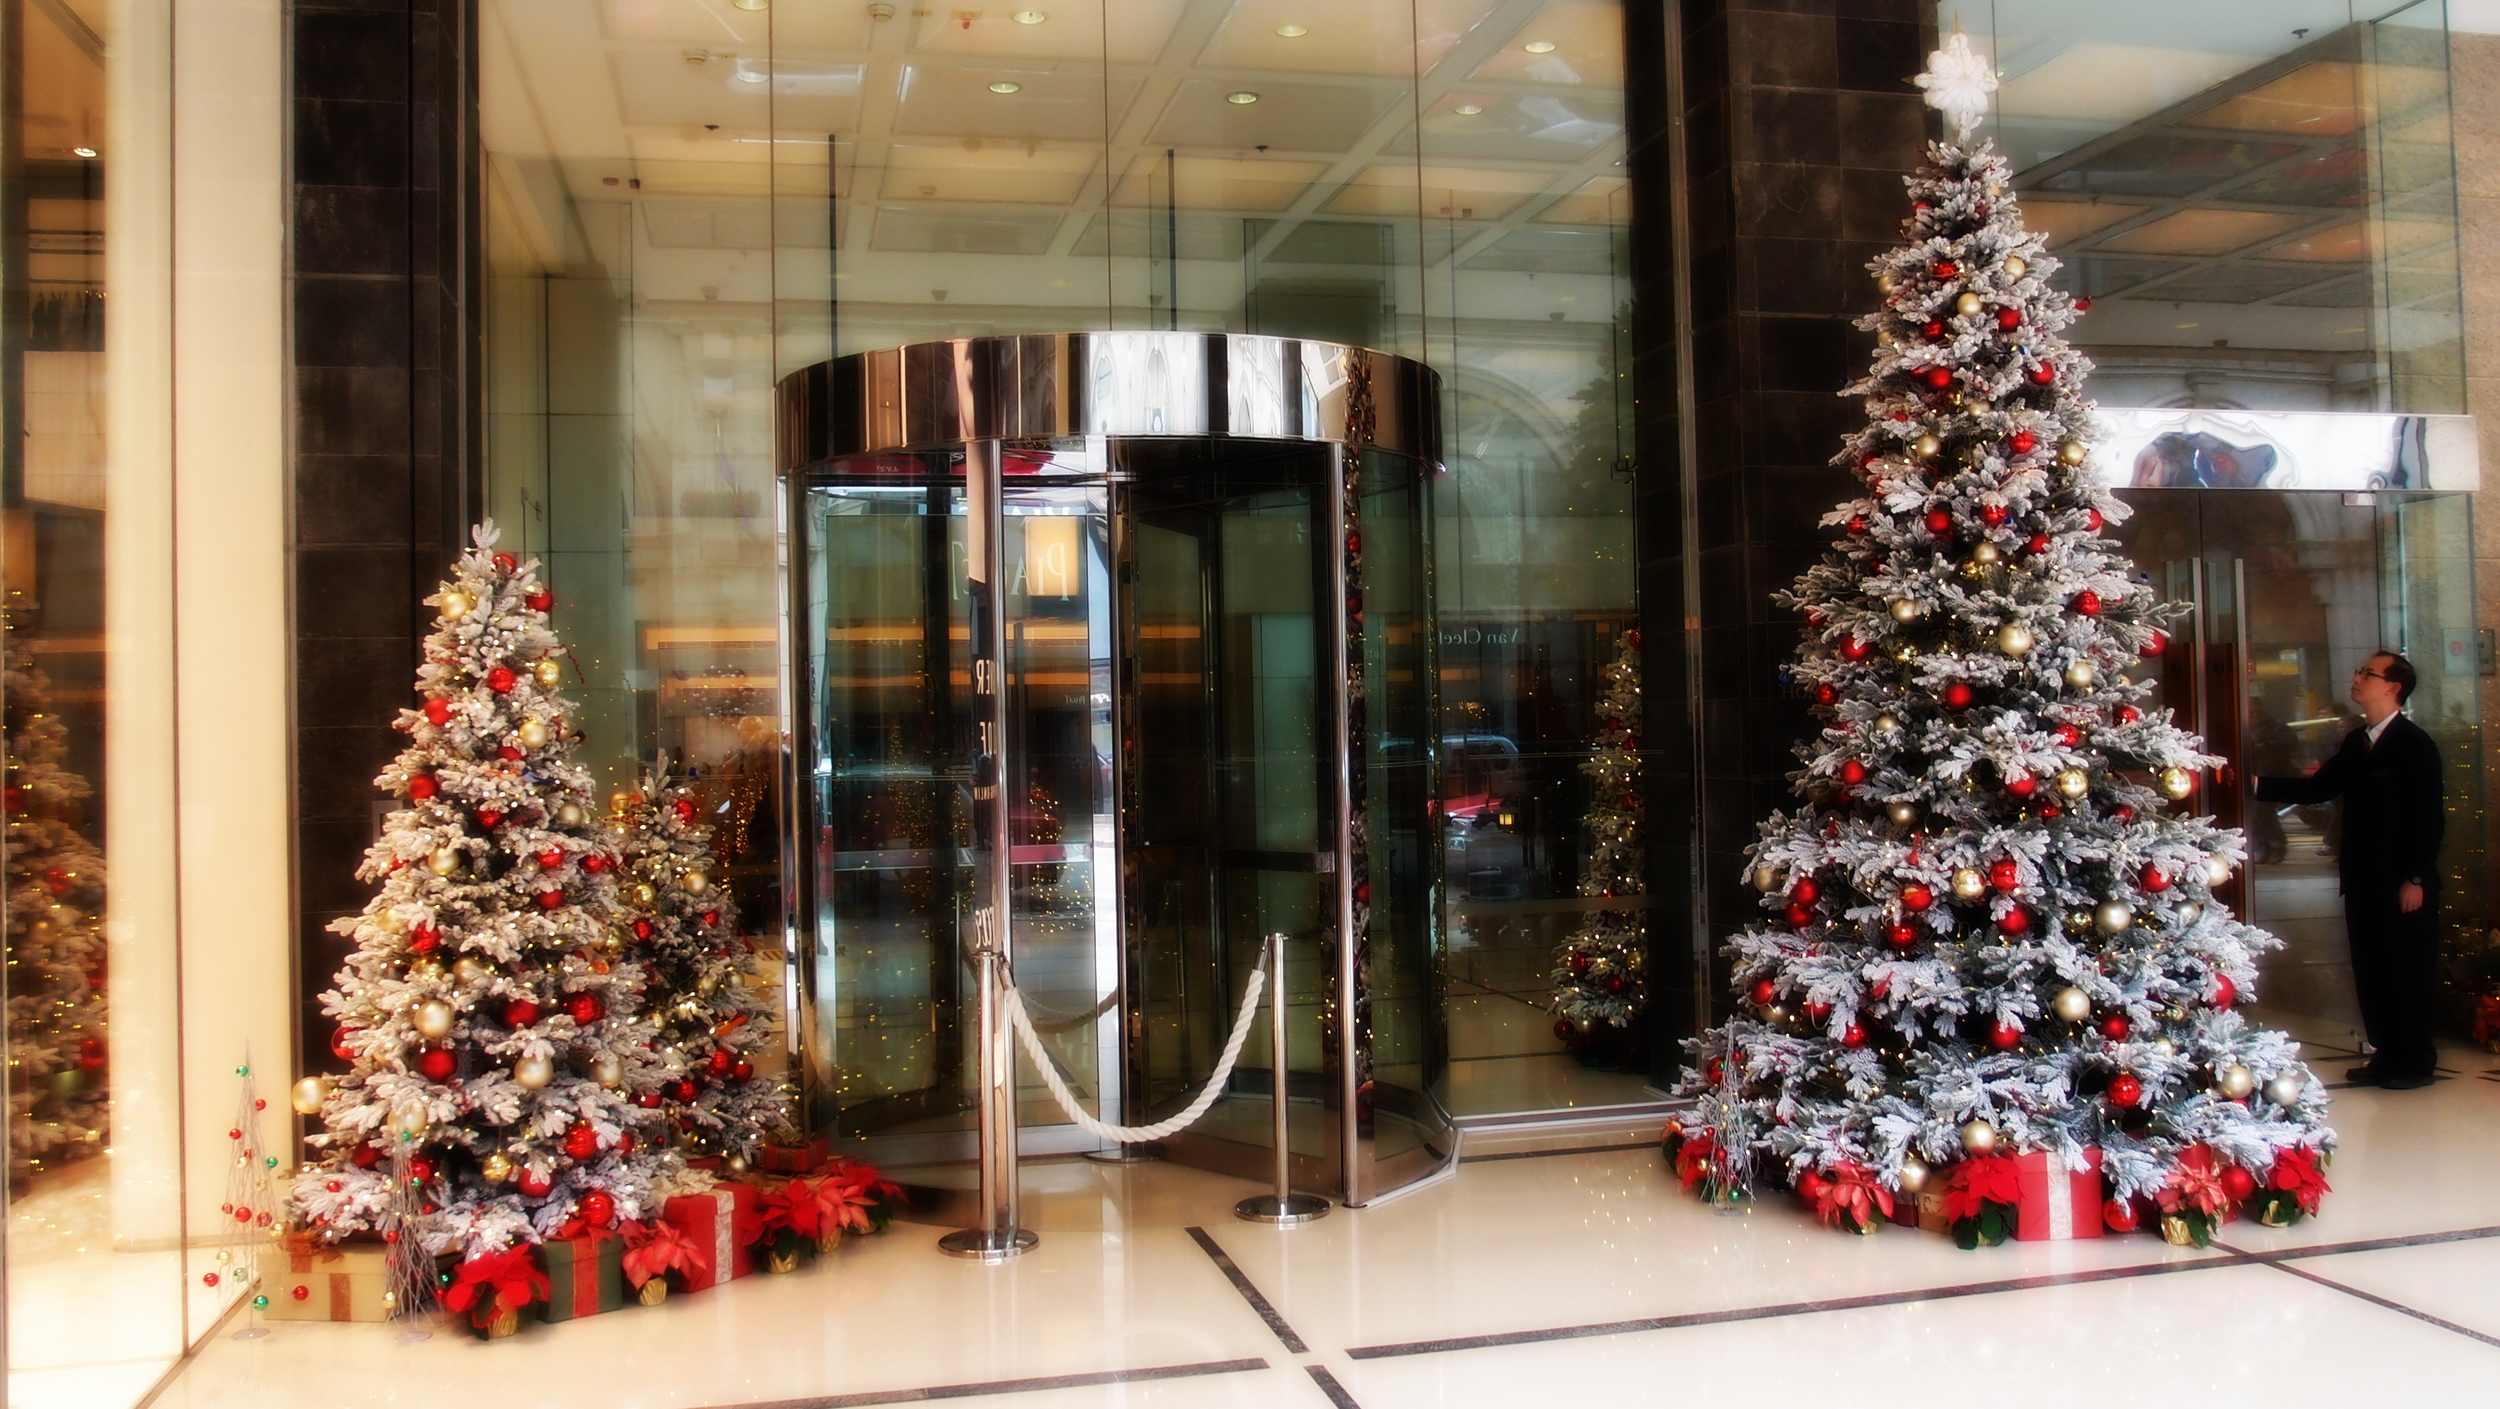 The Marco Polo Hong Kong Hotel has brilliant Xmas decorations